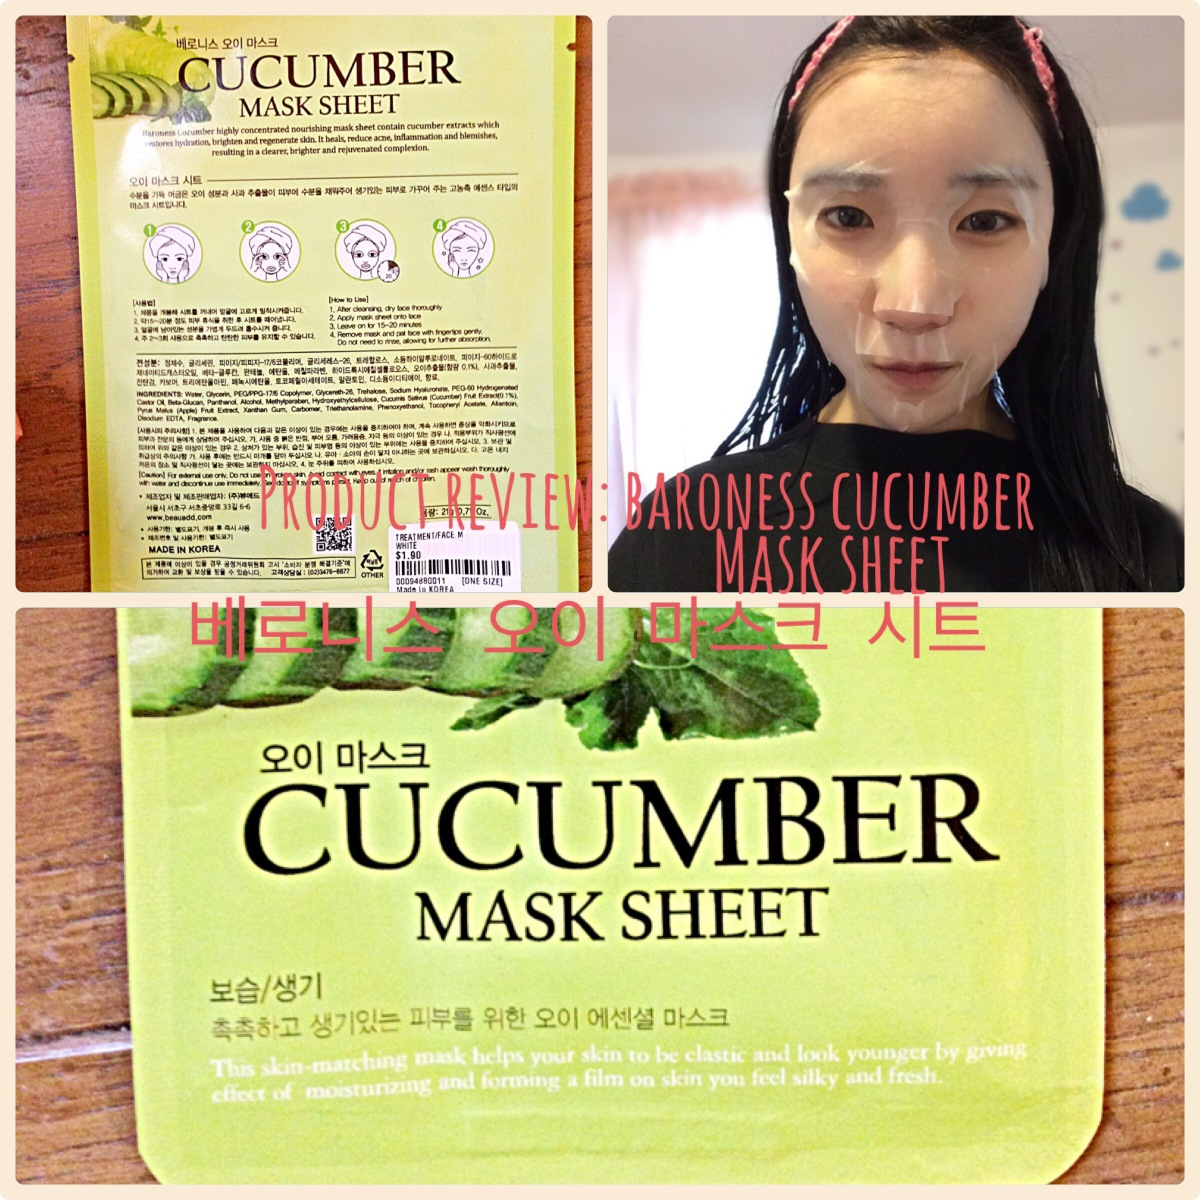 Review: Baroness Cucumber Mask Sheet (베로니스 오이 마스크 시트)